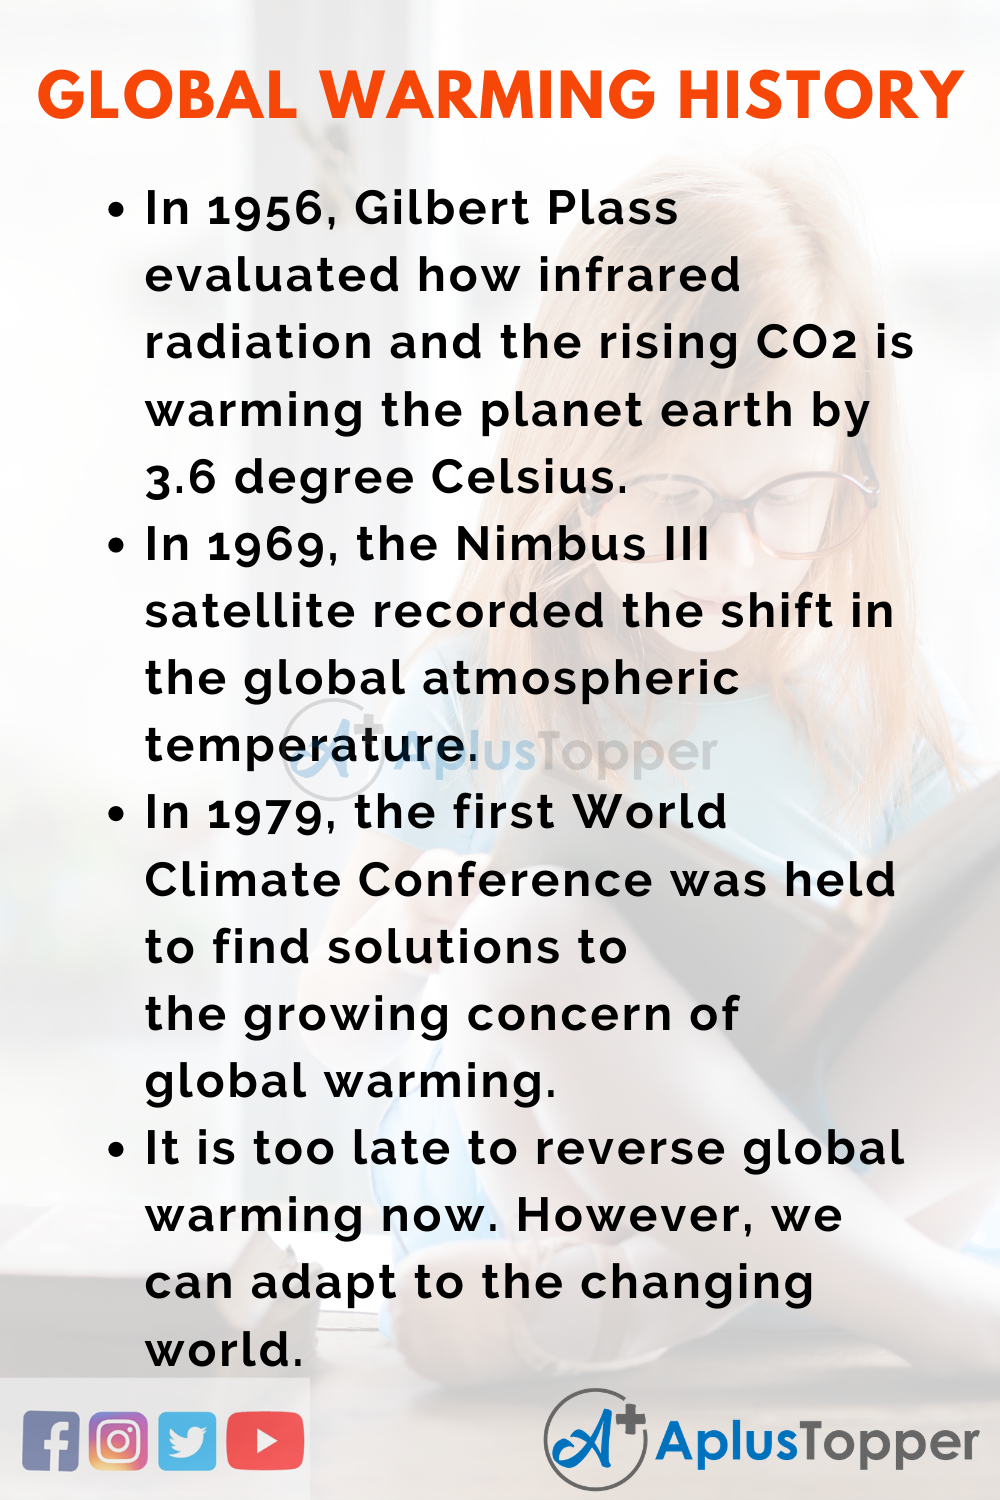 Essay About global warming history